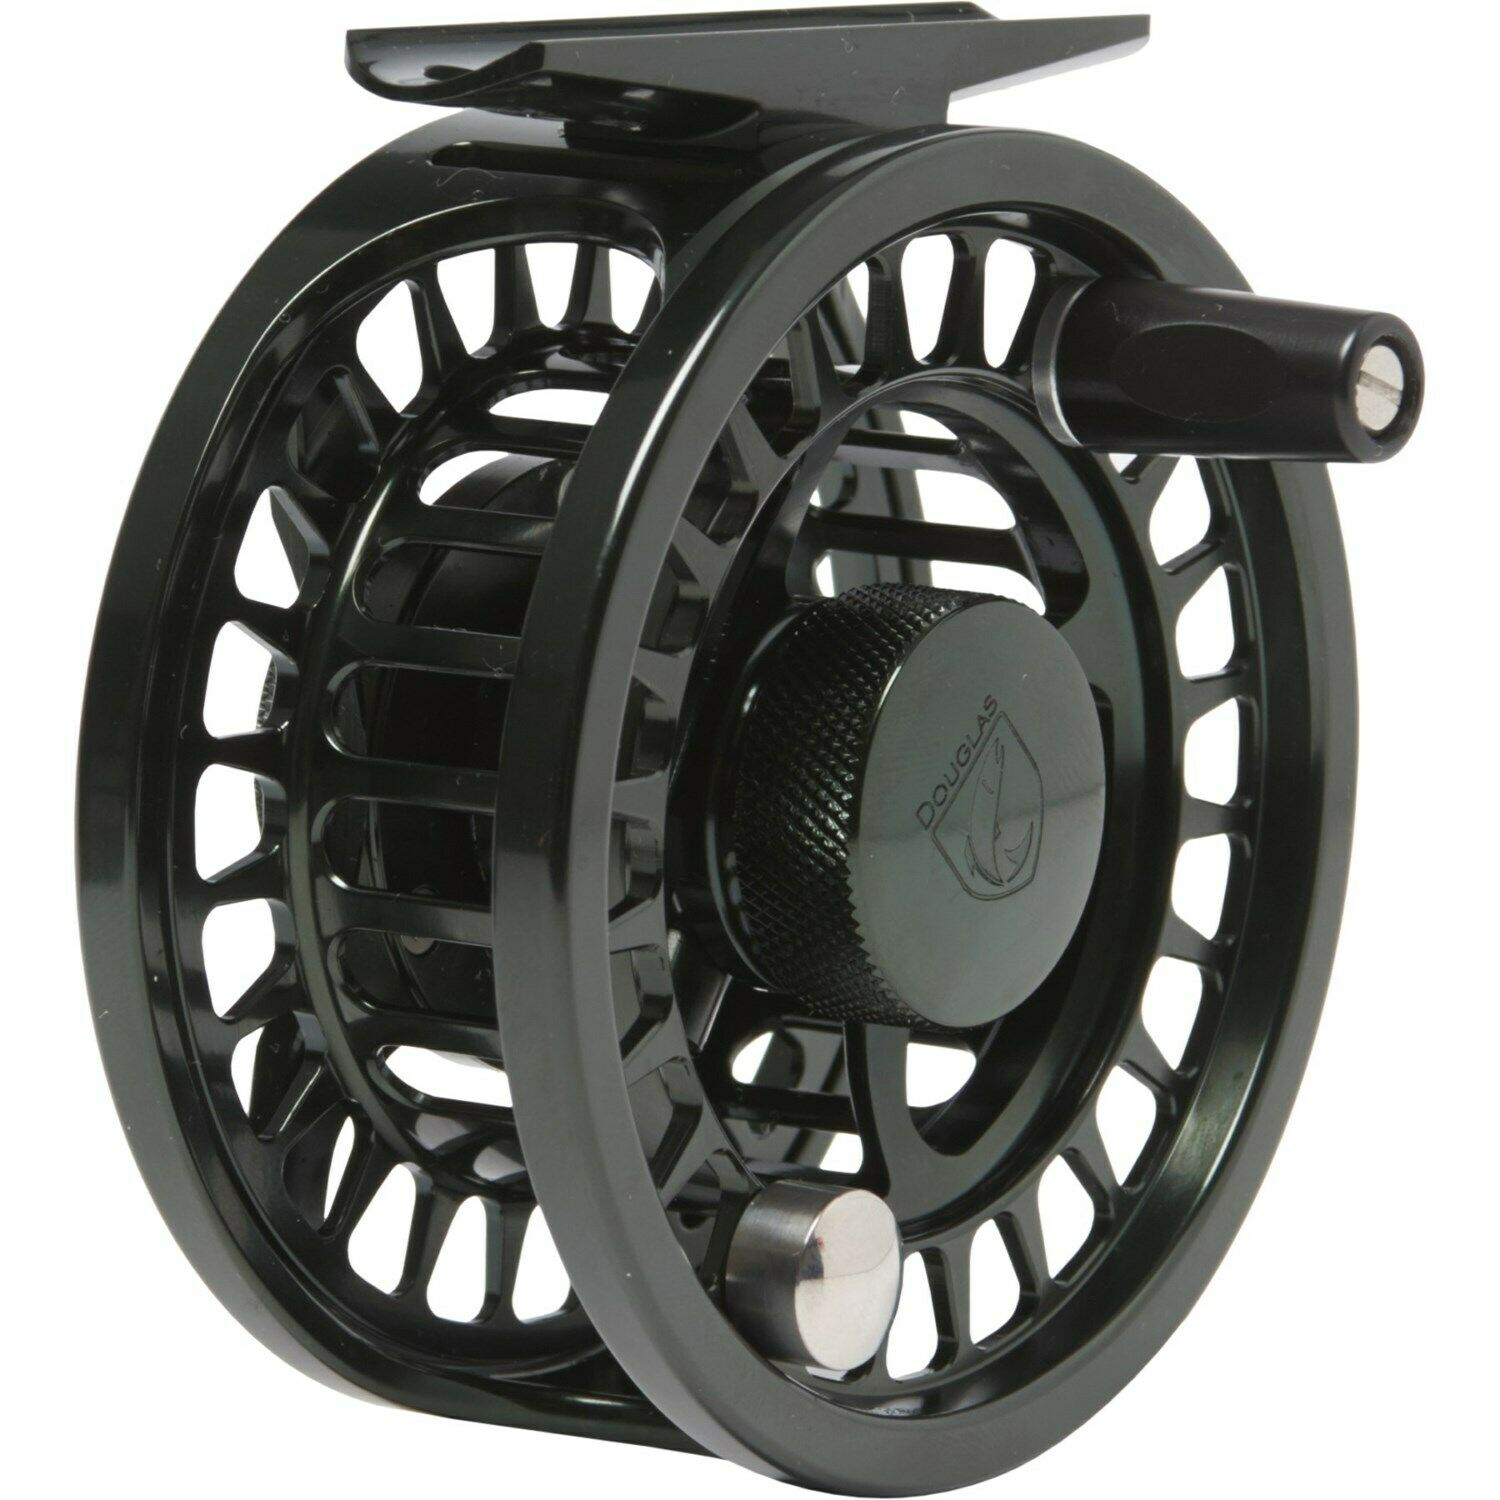 nuovo,,,Douglas all'apertos Nexus Fly Reel gratuito SHIPPING 34 reel  295 value